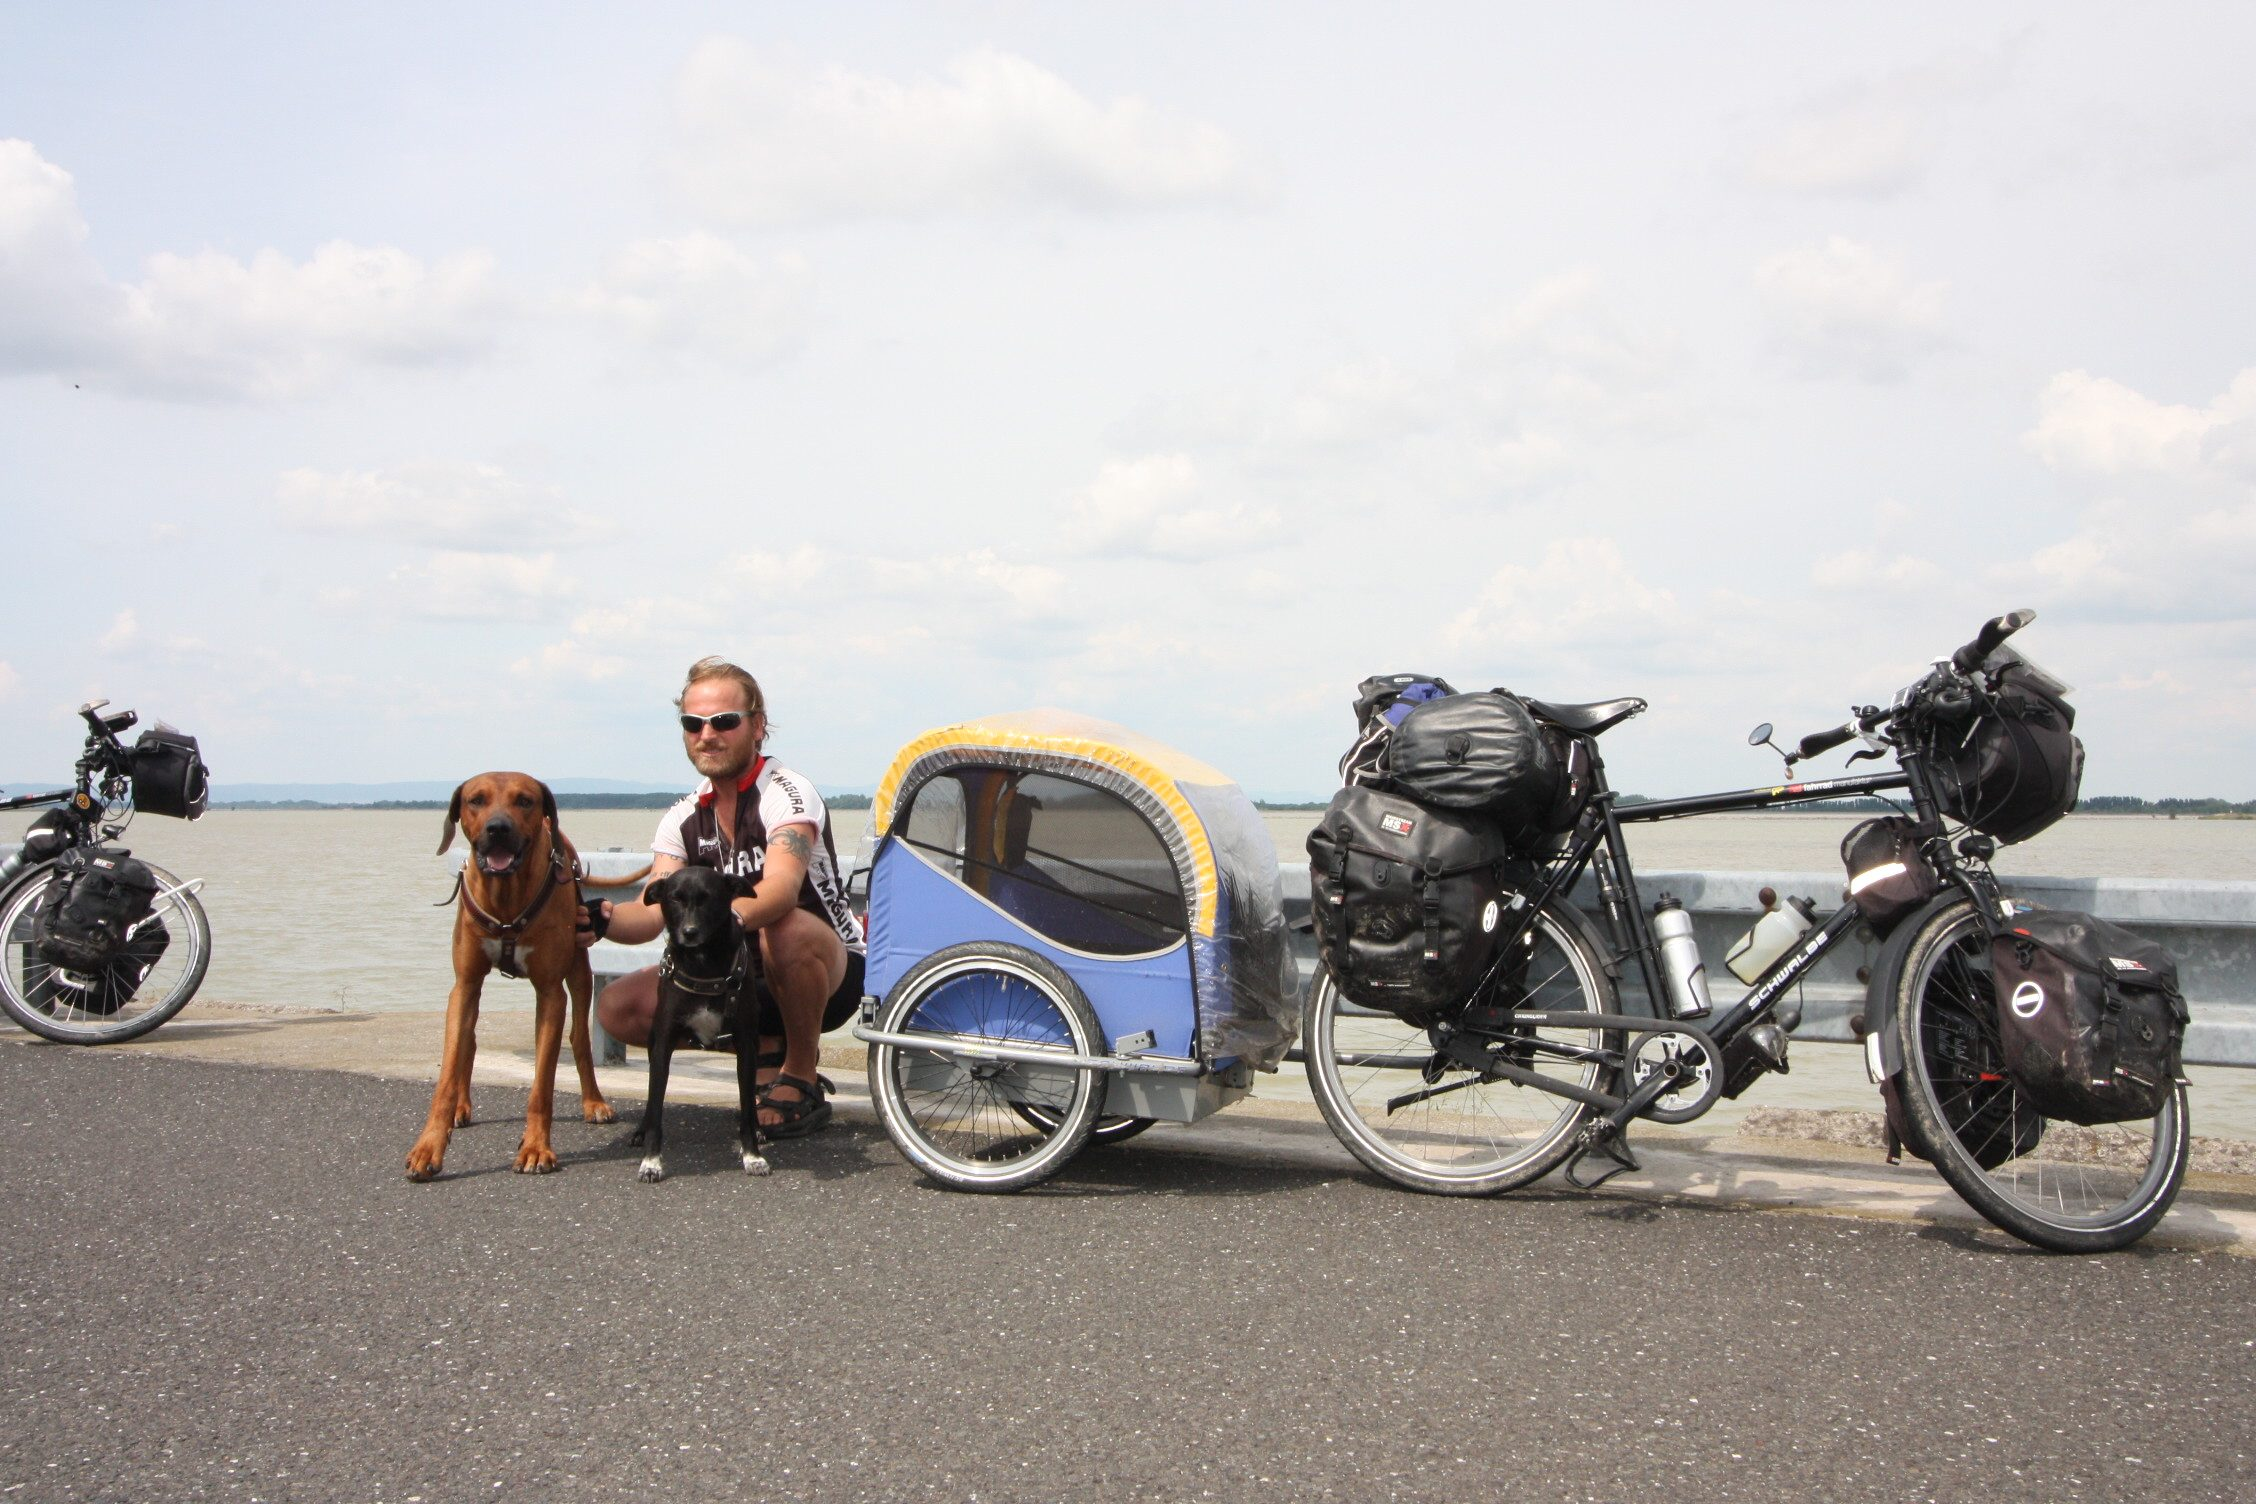 Journey of Our Life (So Far) - Europe To Asia By Bike